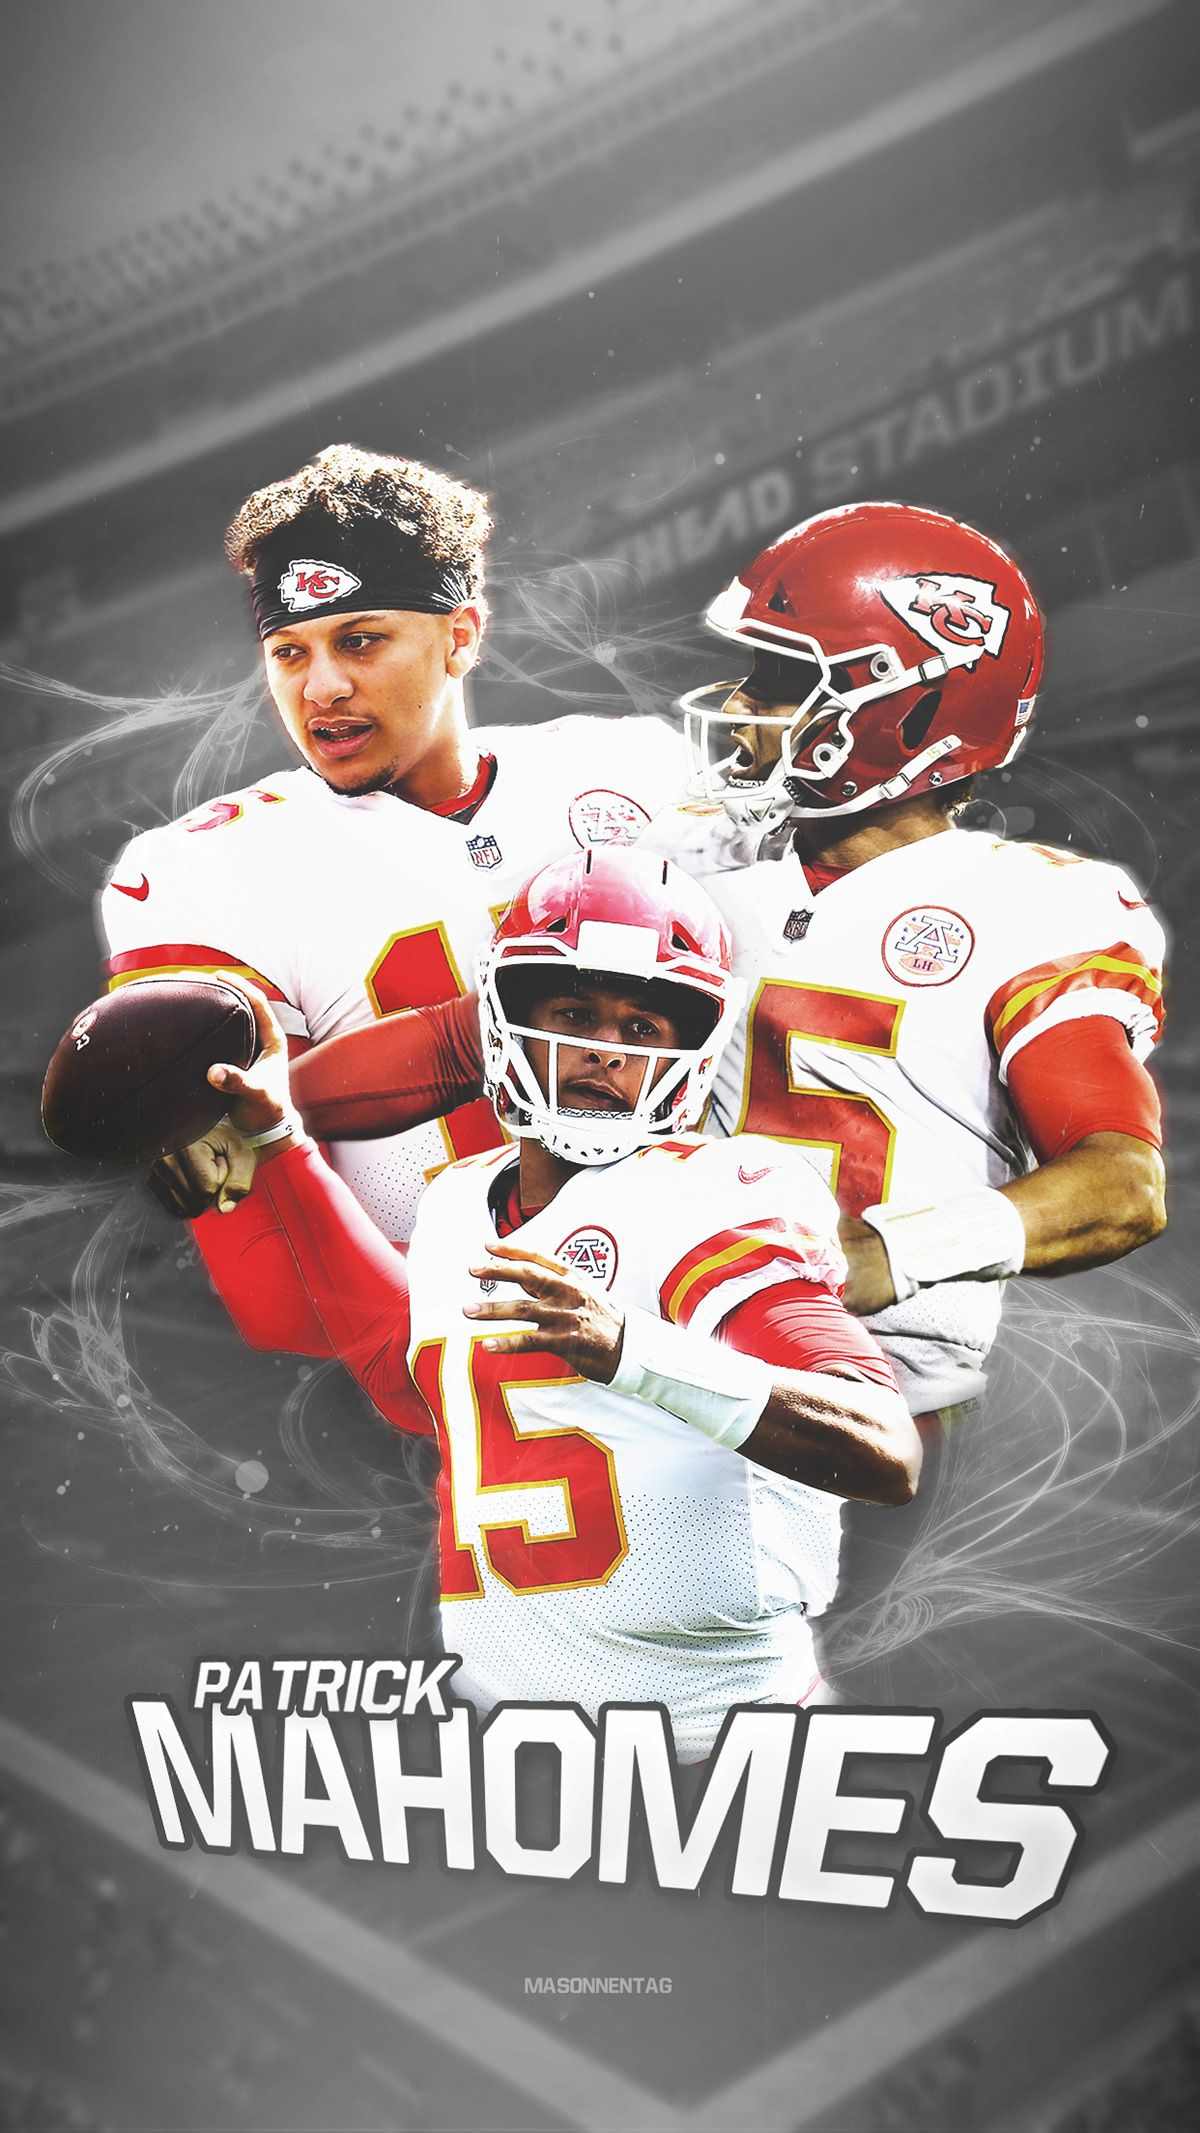 Patrick Mahomes Wallpaper on Behance (With images